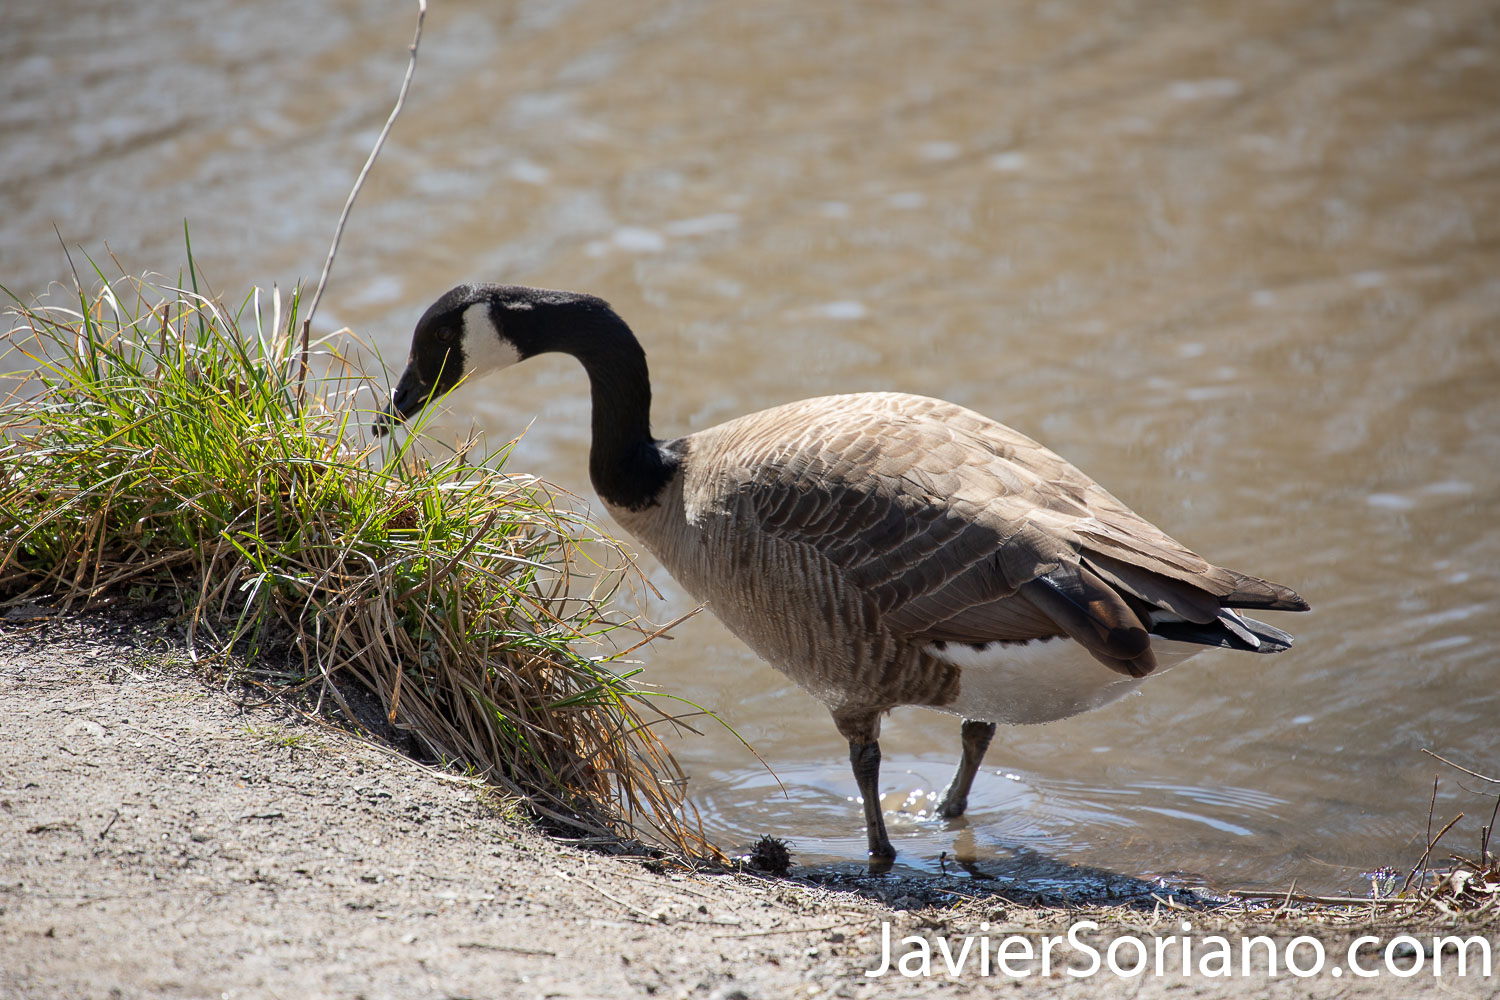 March 24, 2020. New York City - Canada goose eating. Photo by Javier Soriano/www.JavierSoriano.com